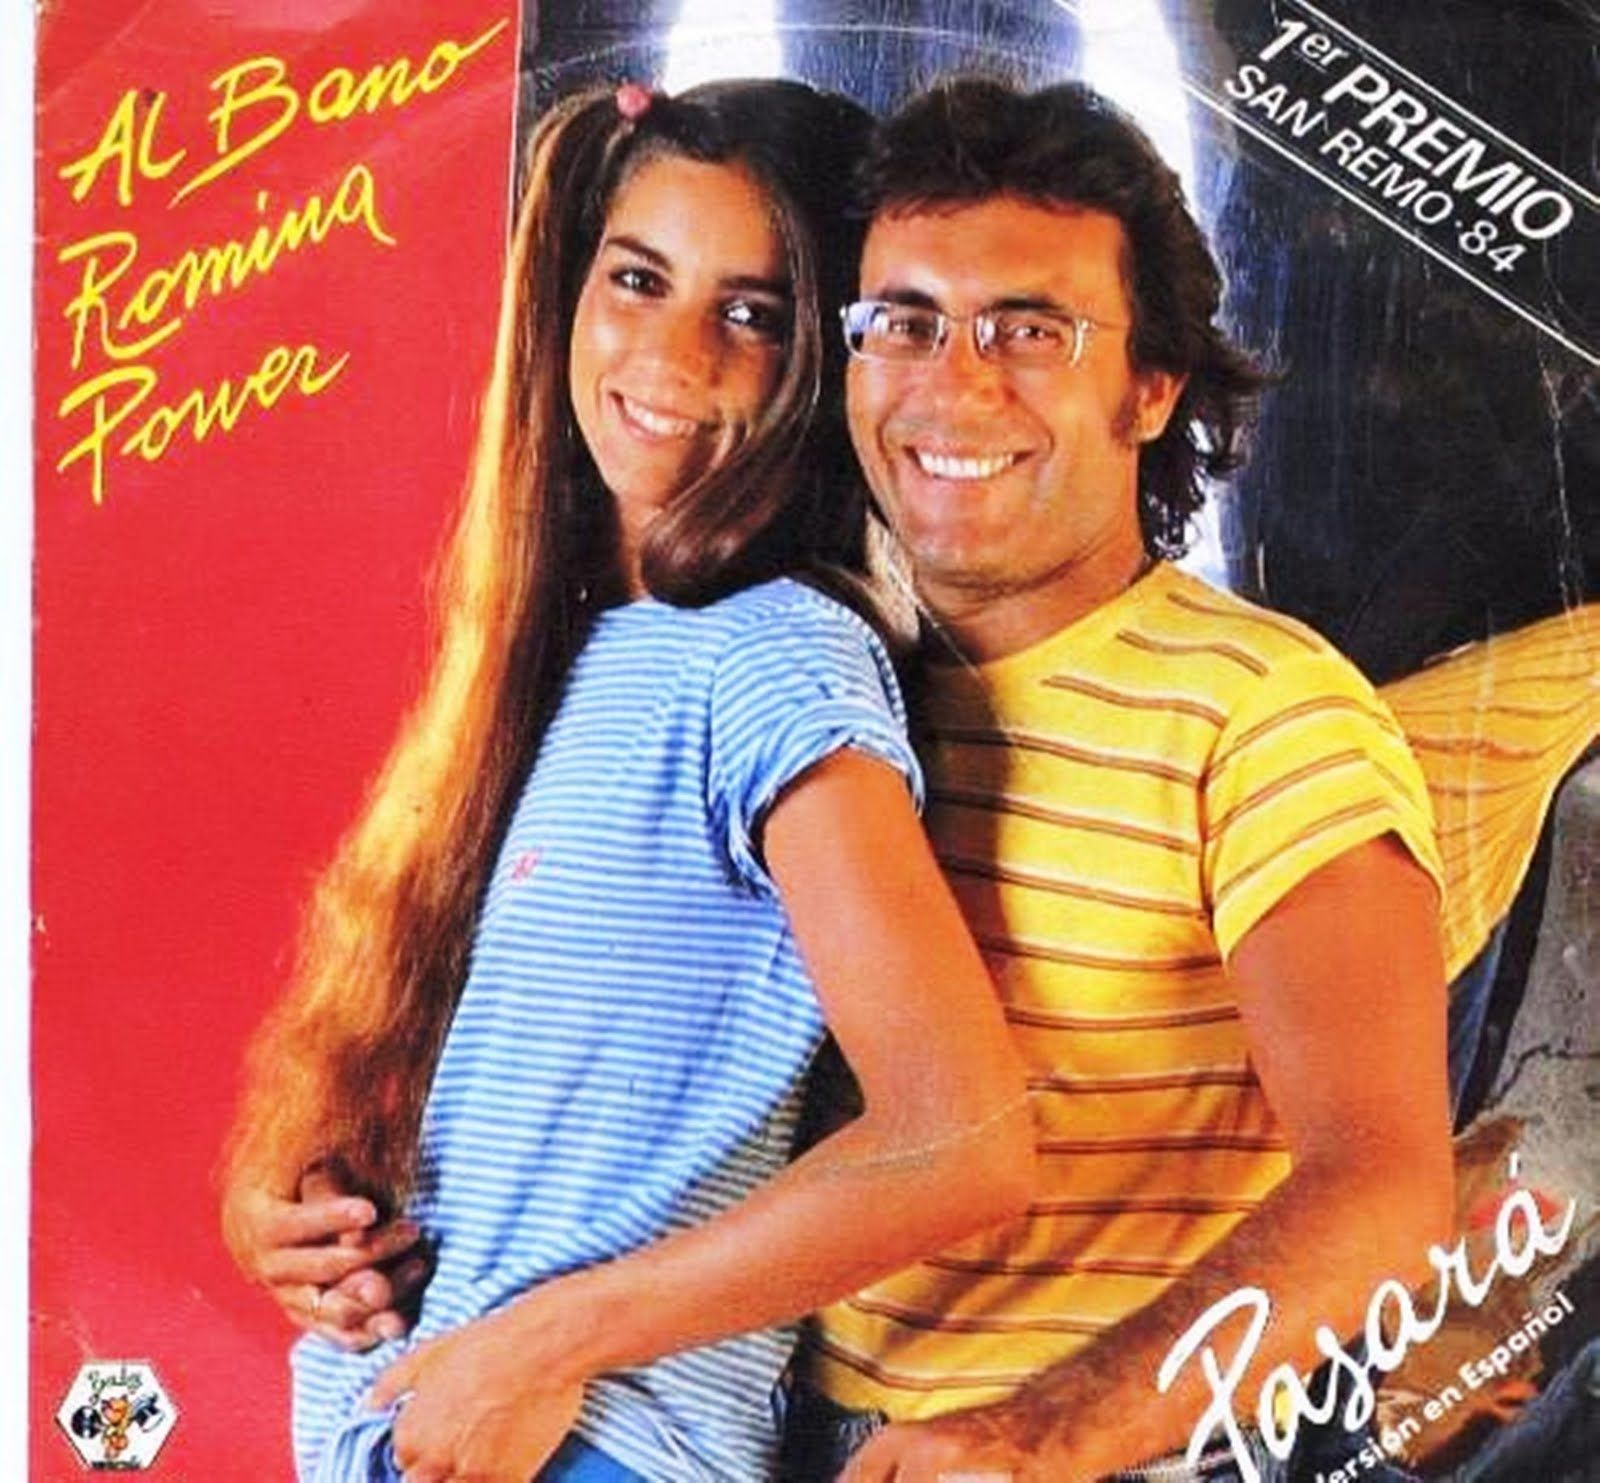 Al bano e romina 1600 1483 romina power for Al bano e romina power